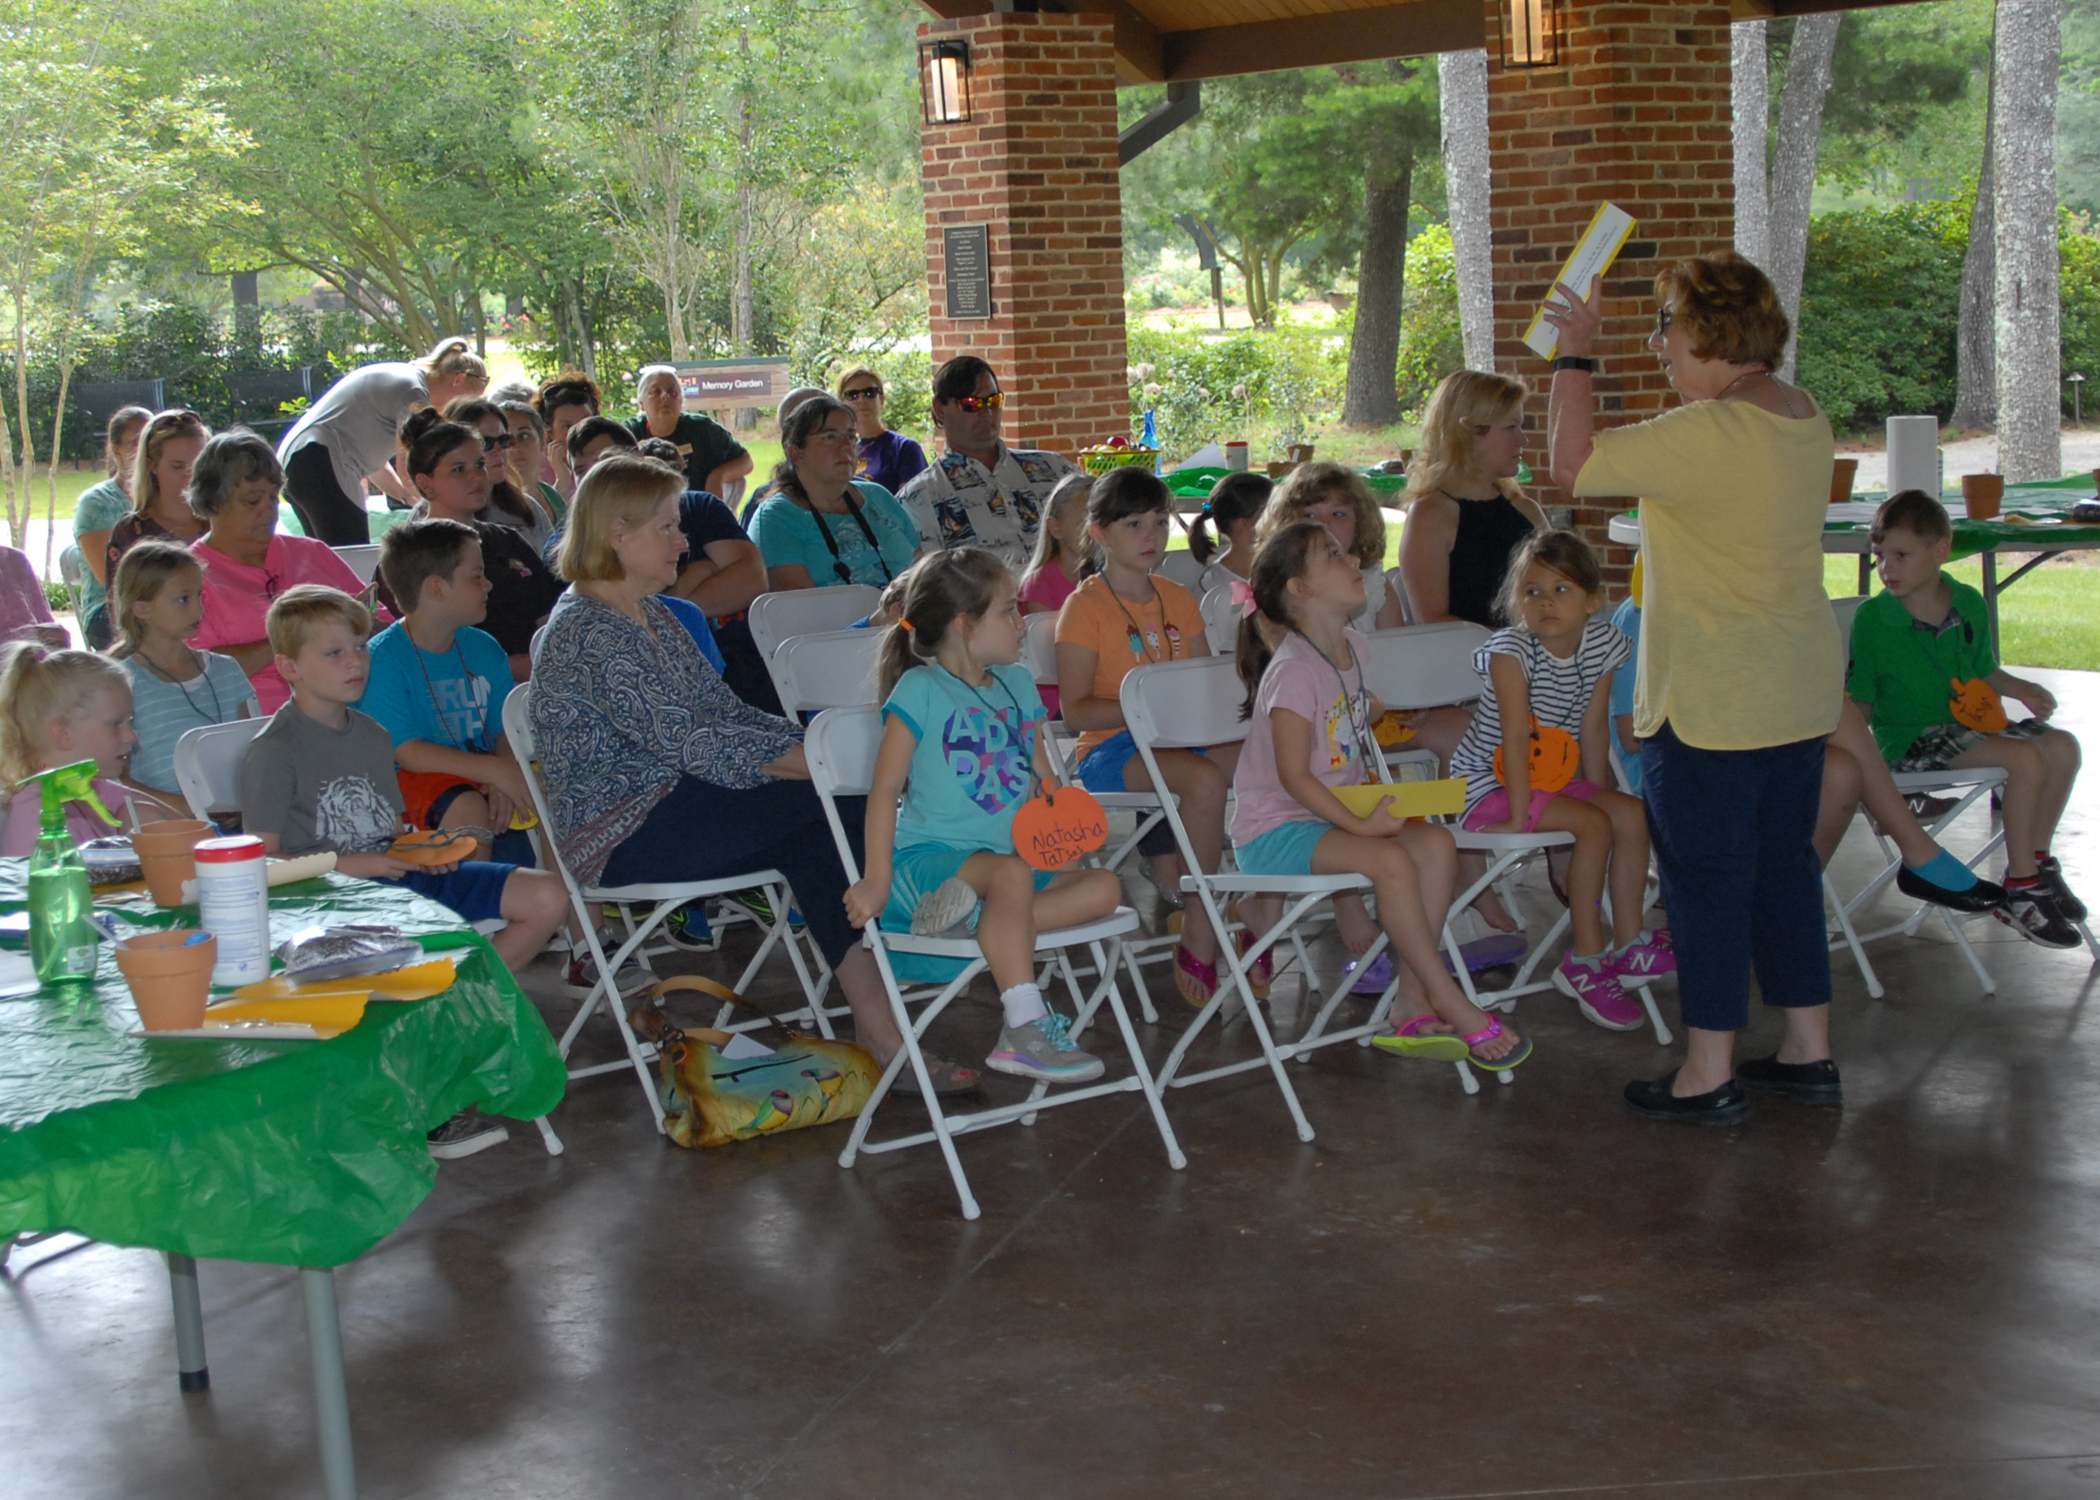 Children's Garden program set for Sept. 30 at LSU AgCenter Botanic Gardens at Burden